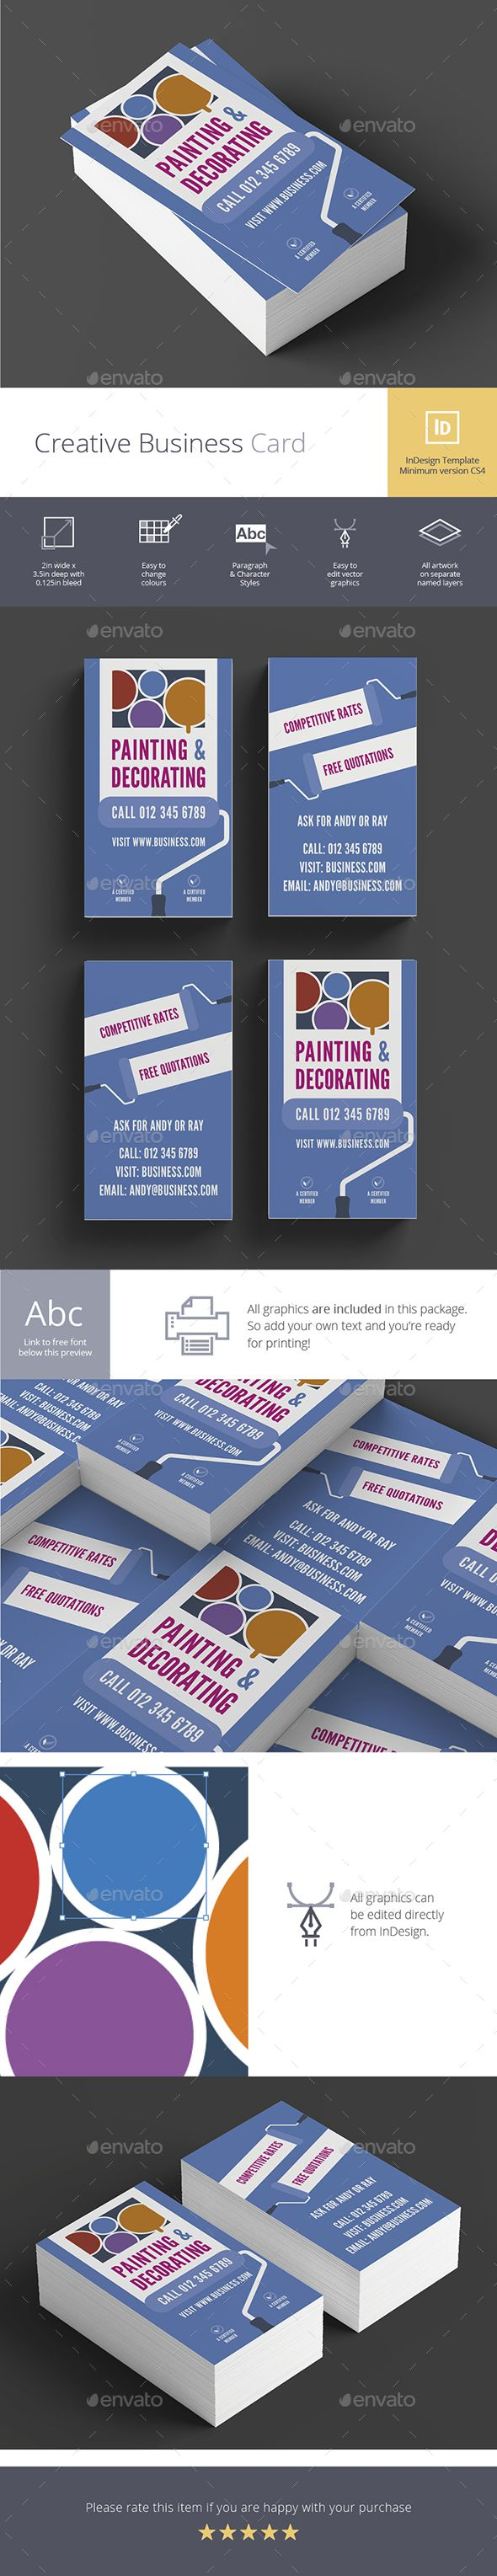 Creative Business Card No 10   Pinterest   Business cards  Card     Creative Business Card Design Idea Template No 10   Creative Business Card  Template InDesign INDD